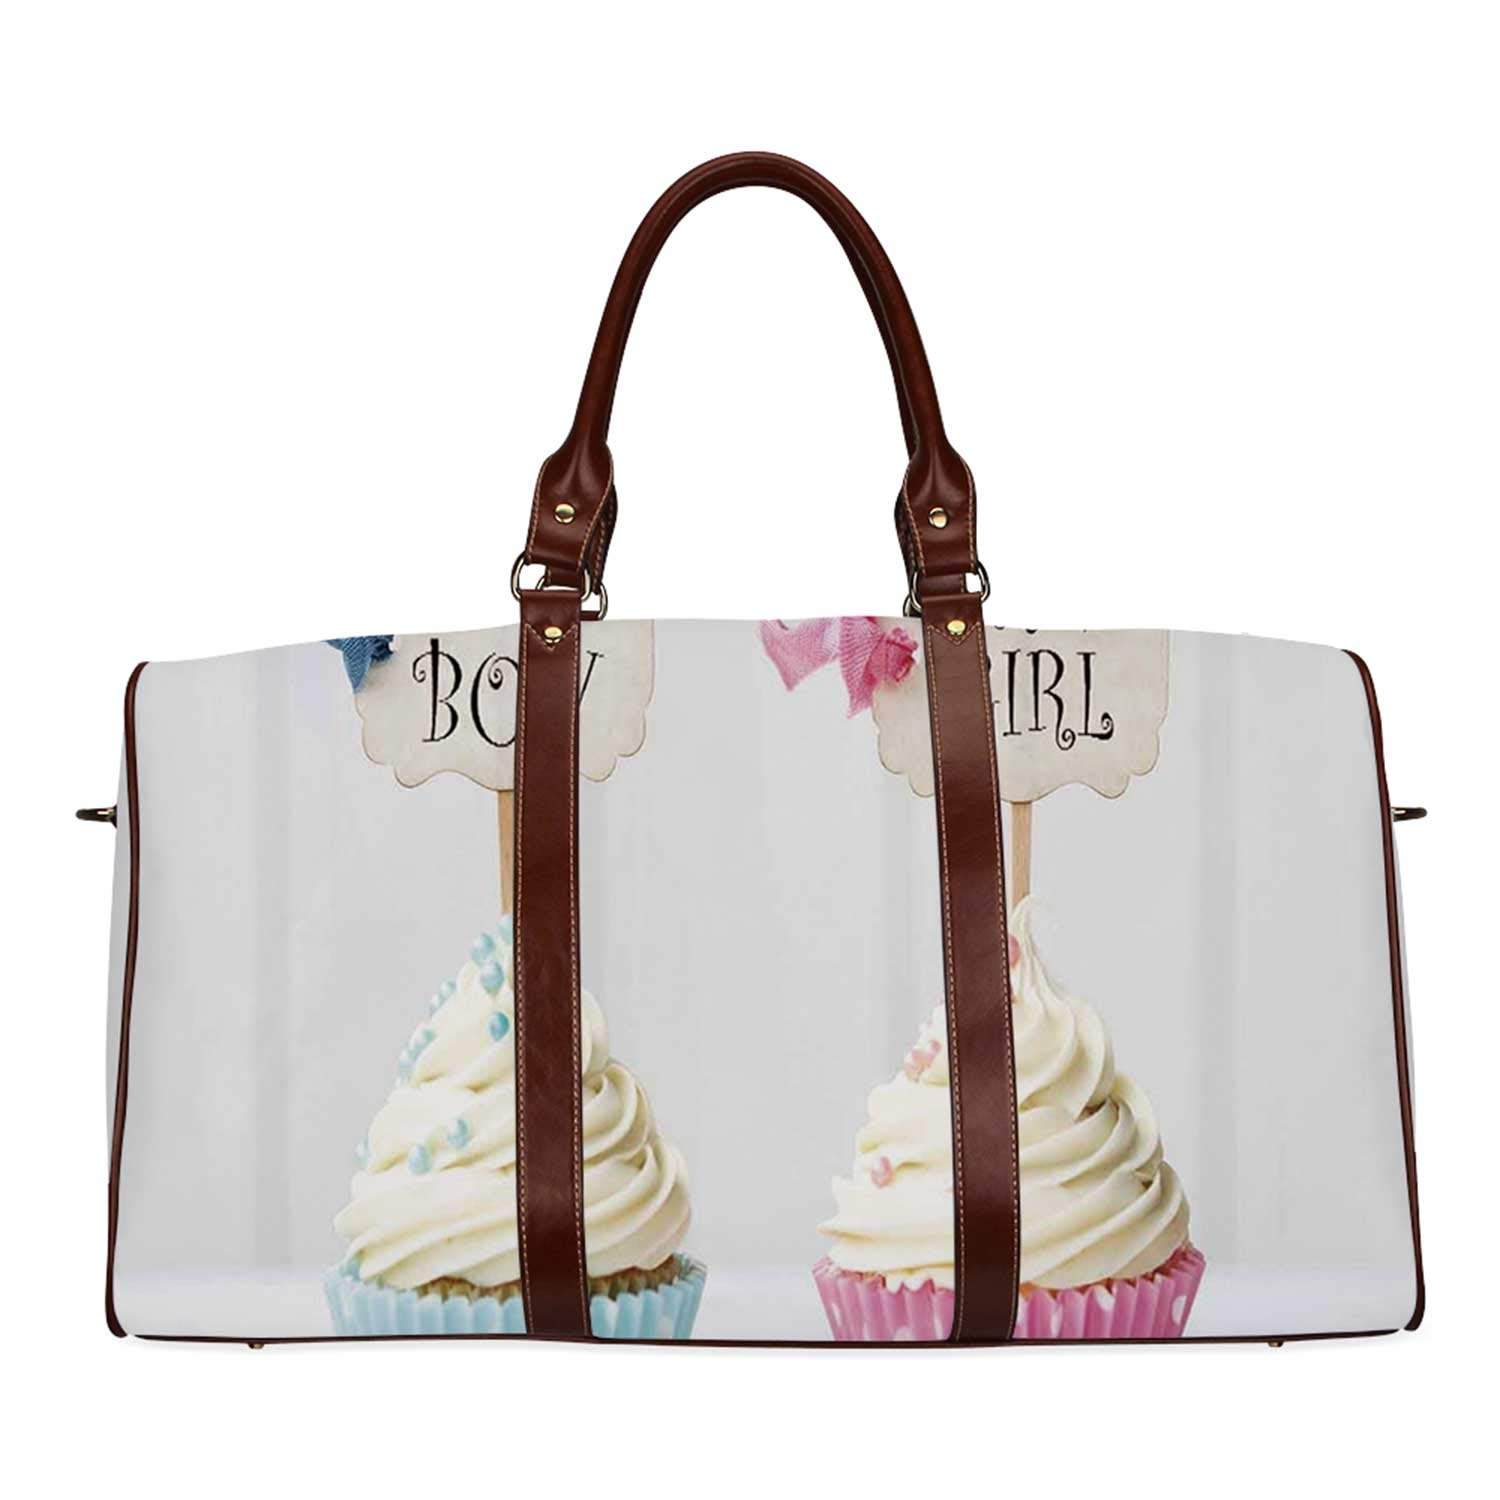 Gender Reveal Personal Travel Bag,Boy and Girl with Cupcakes Yummy Chocolate Celebration Theme for Market,18.62''L x 8.5''W x 9.65''H by YOLIYANA